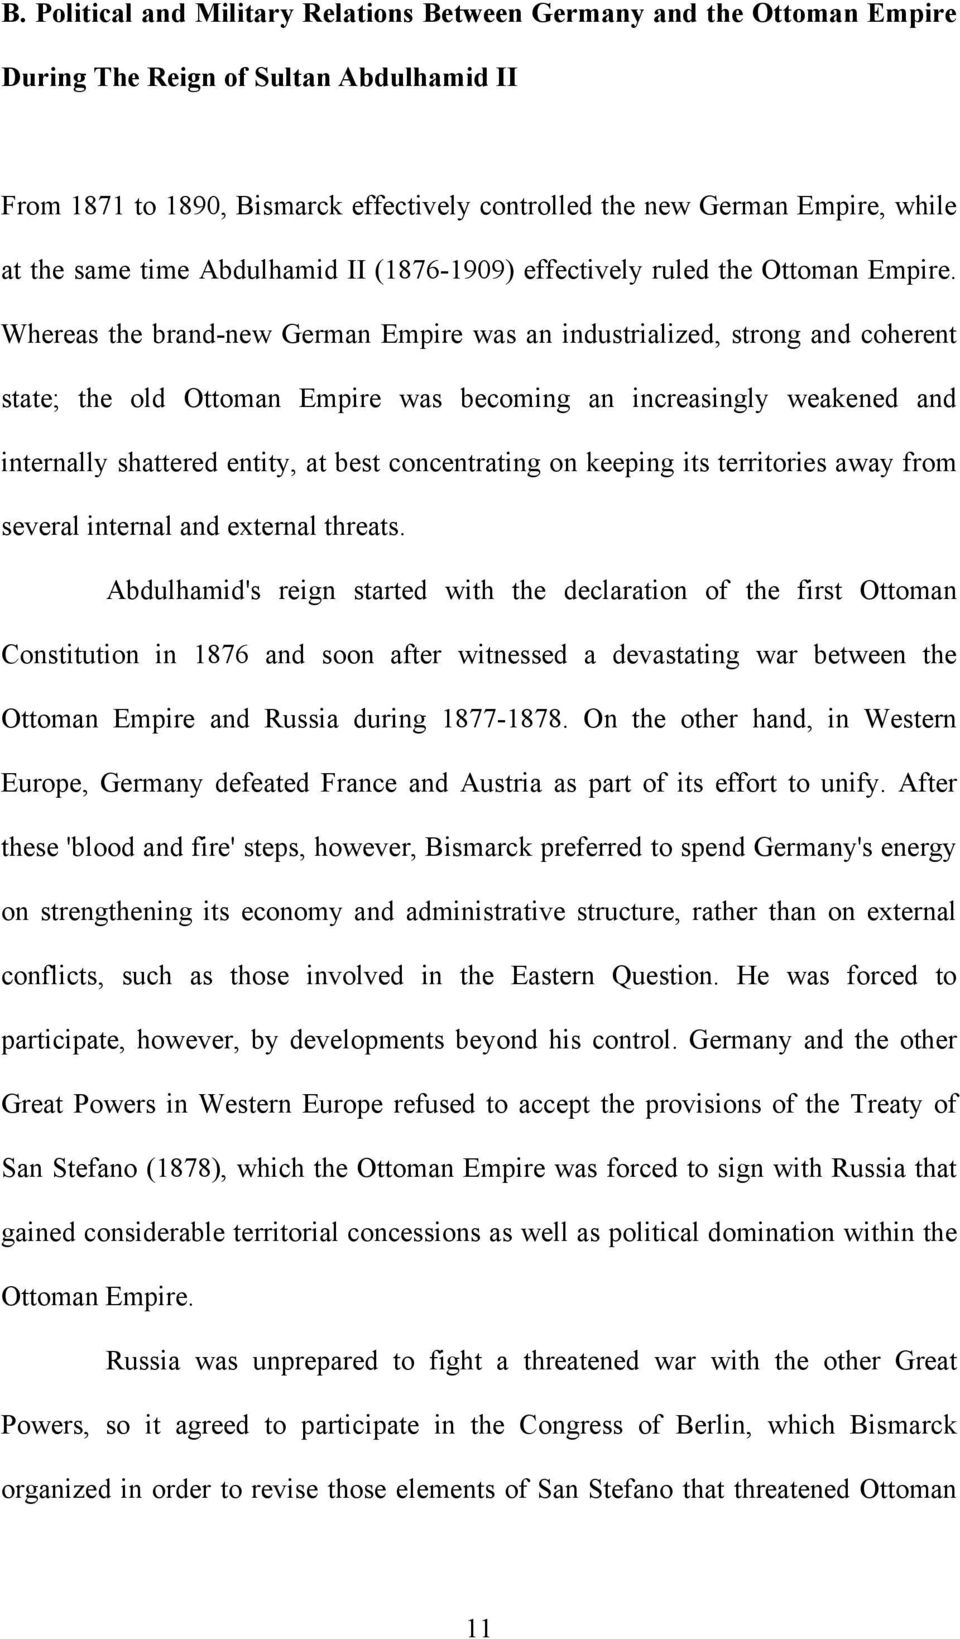 Whereas the brand-new German Empire was an industrialized, strong and coherent state; the old Ottoman Empire was becoming an increasingly weakened and internally shattered entity, at best